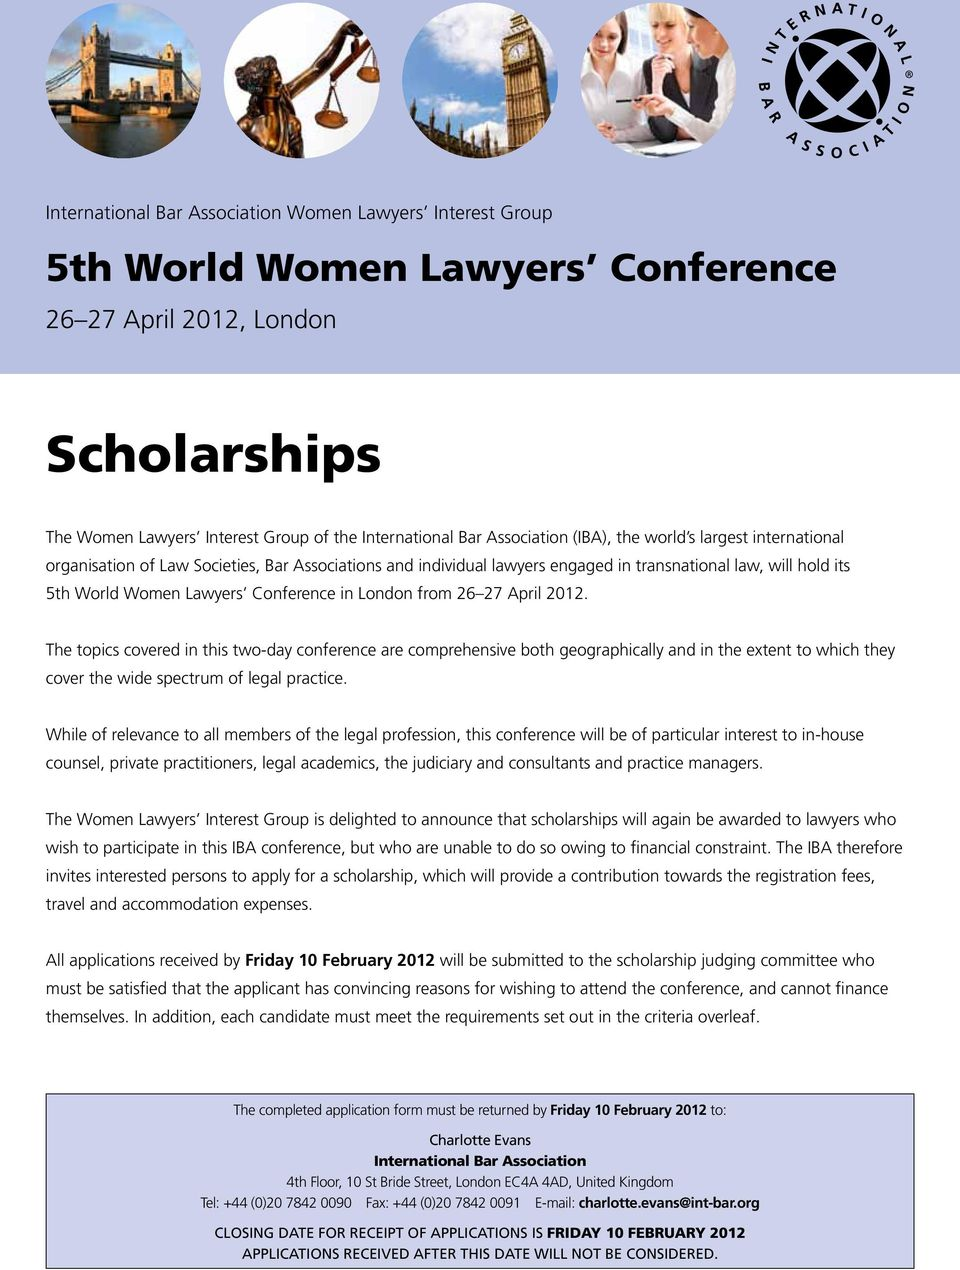 The topics covered in this two-day conference are comprehensive both geographically and in the extent to which they cover the wide spectrum of legal practice.